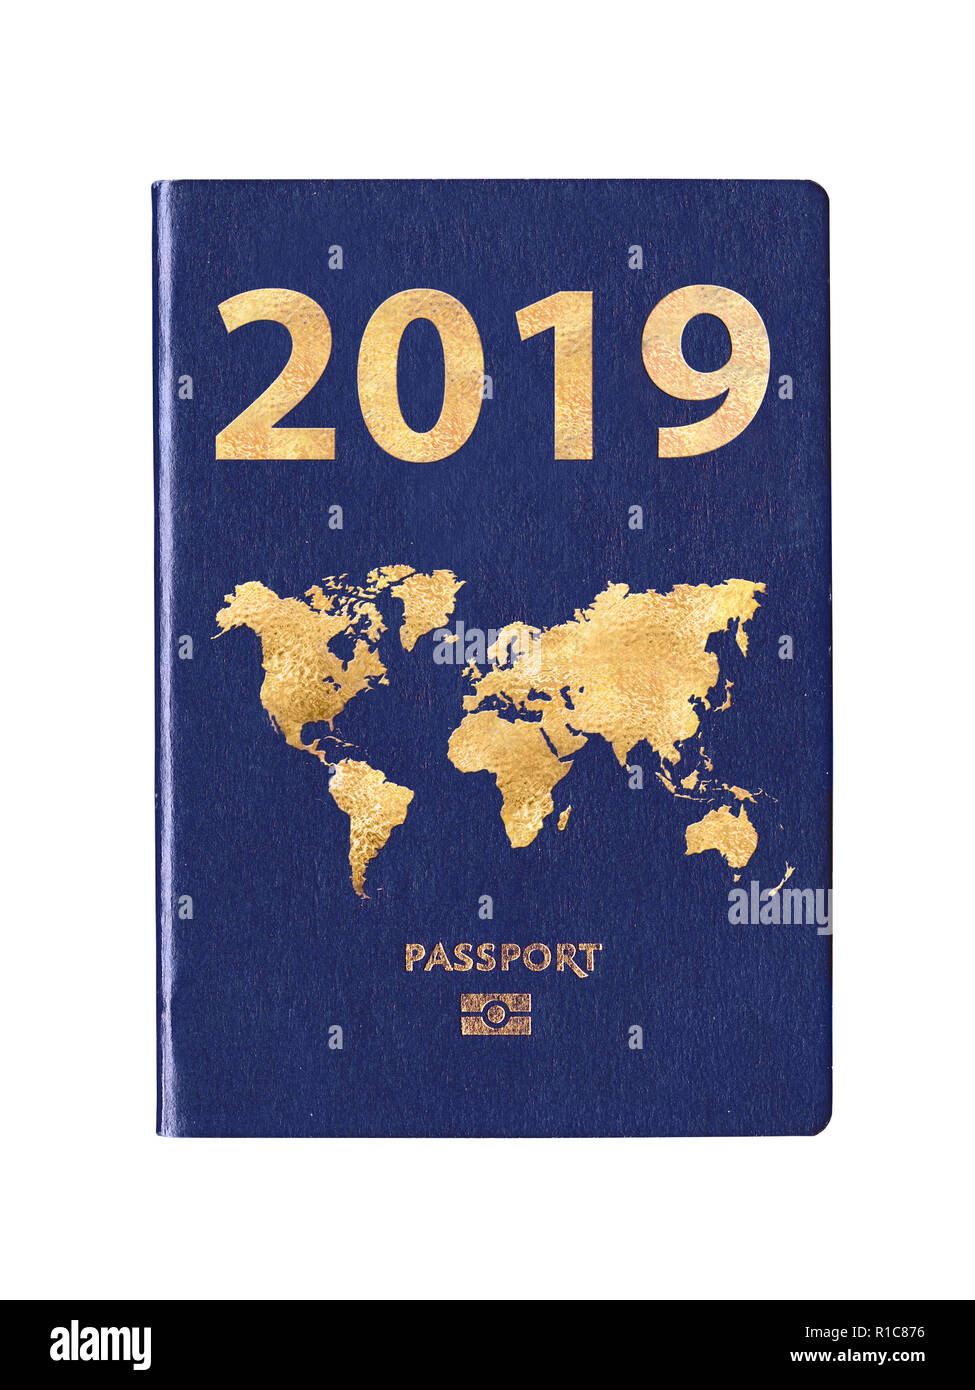 Passport 2019 with a world map on the cover, concept - Stock Image